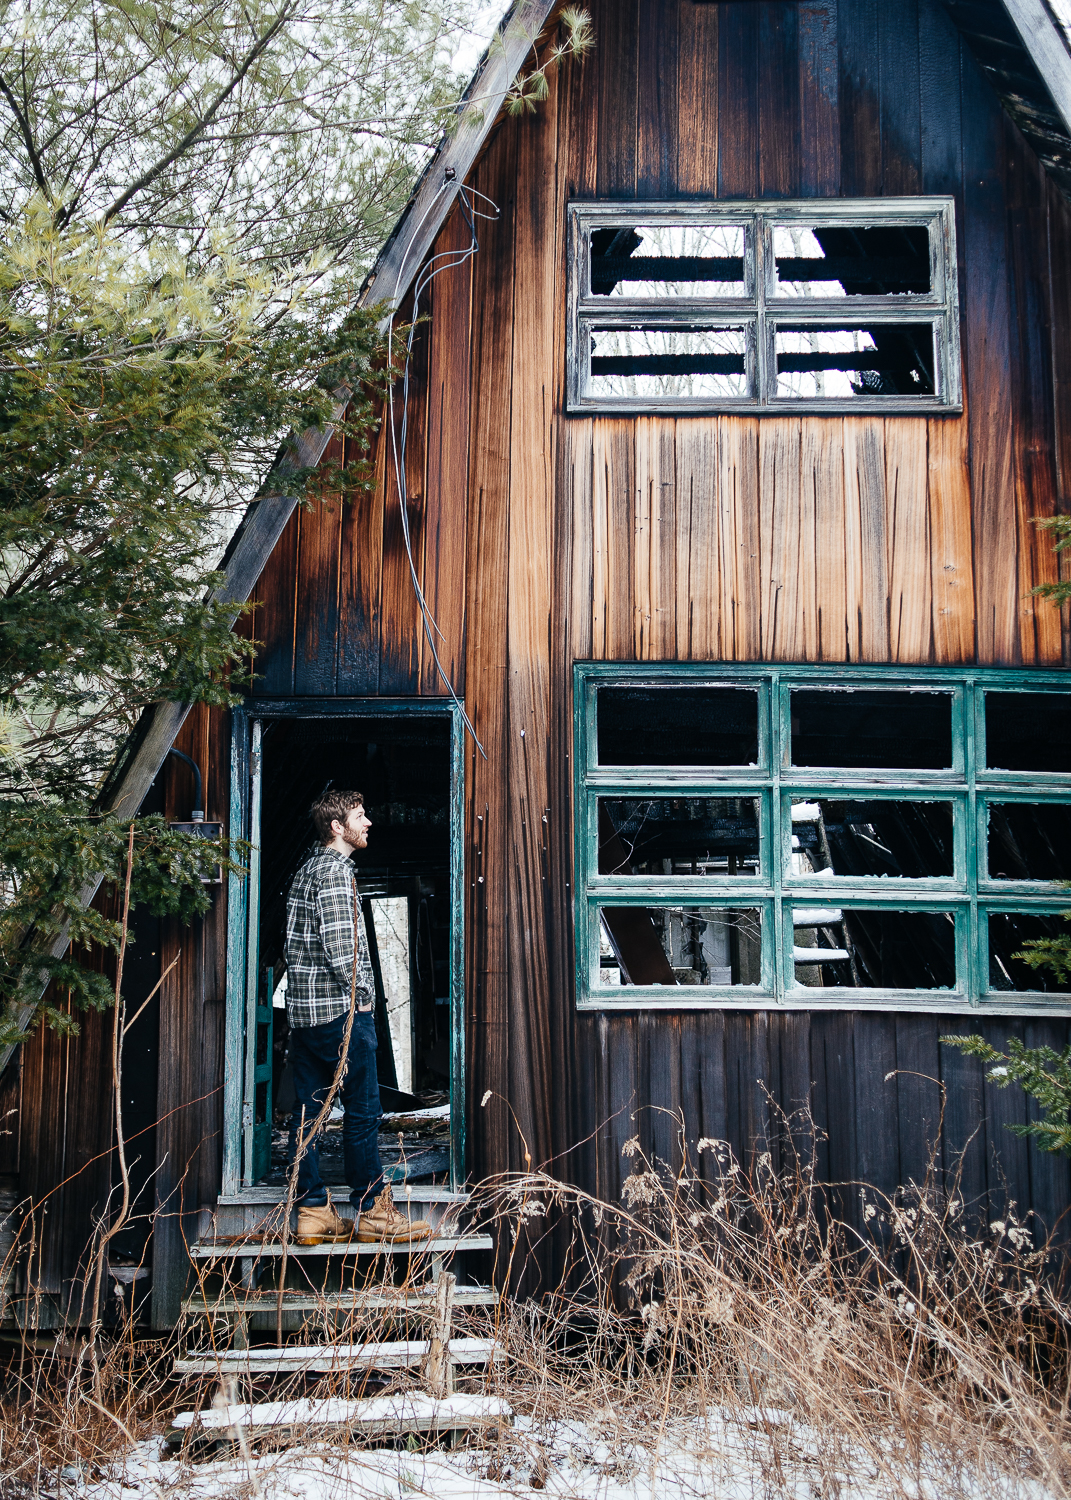 Adam checking out a burned out A-Frame house.